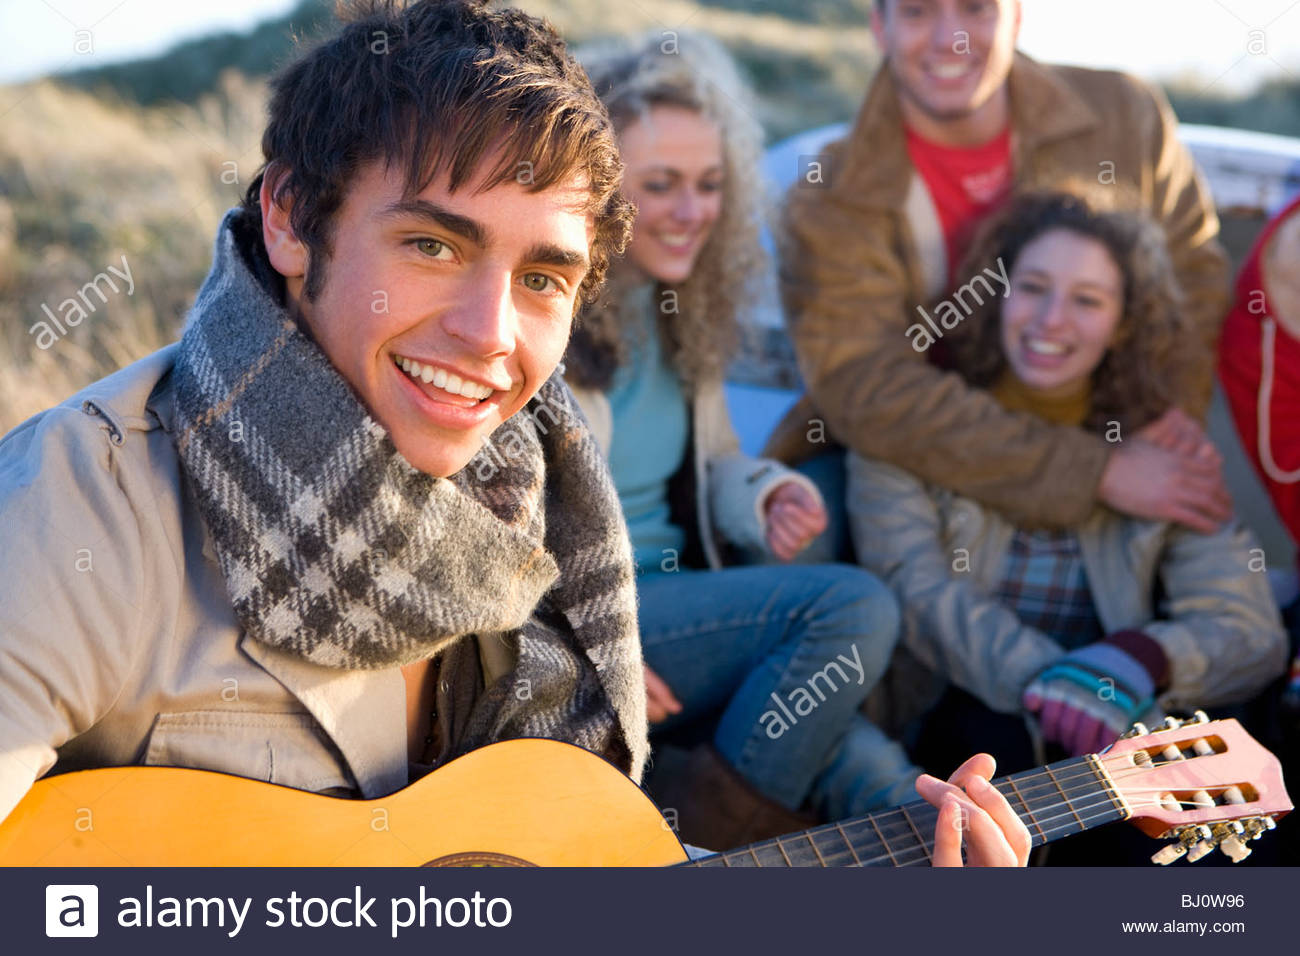 Friends singing and having fun - Stock Image